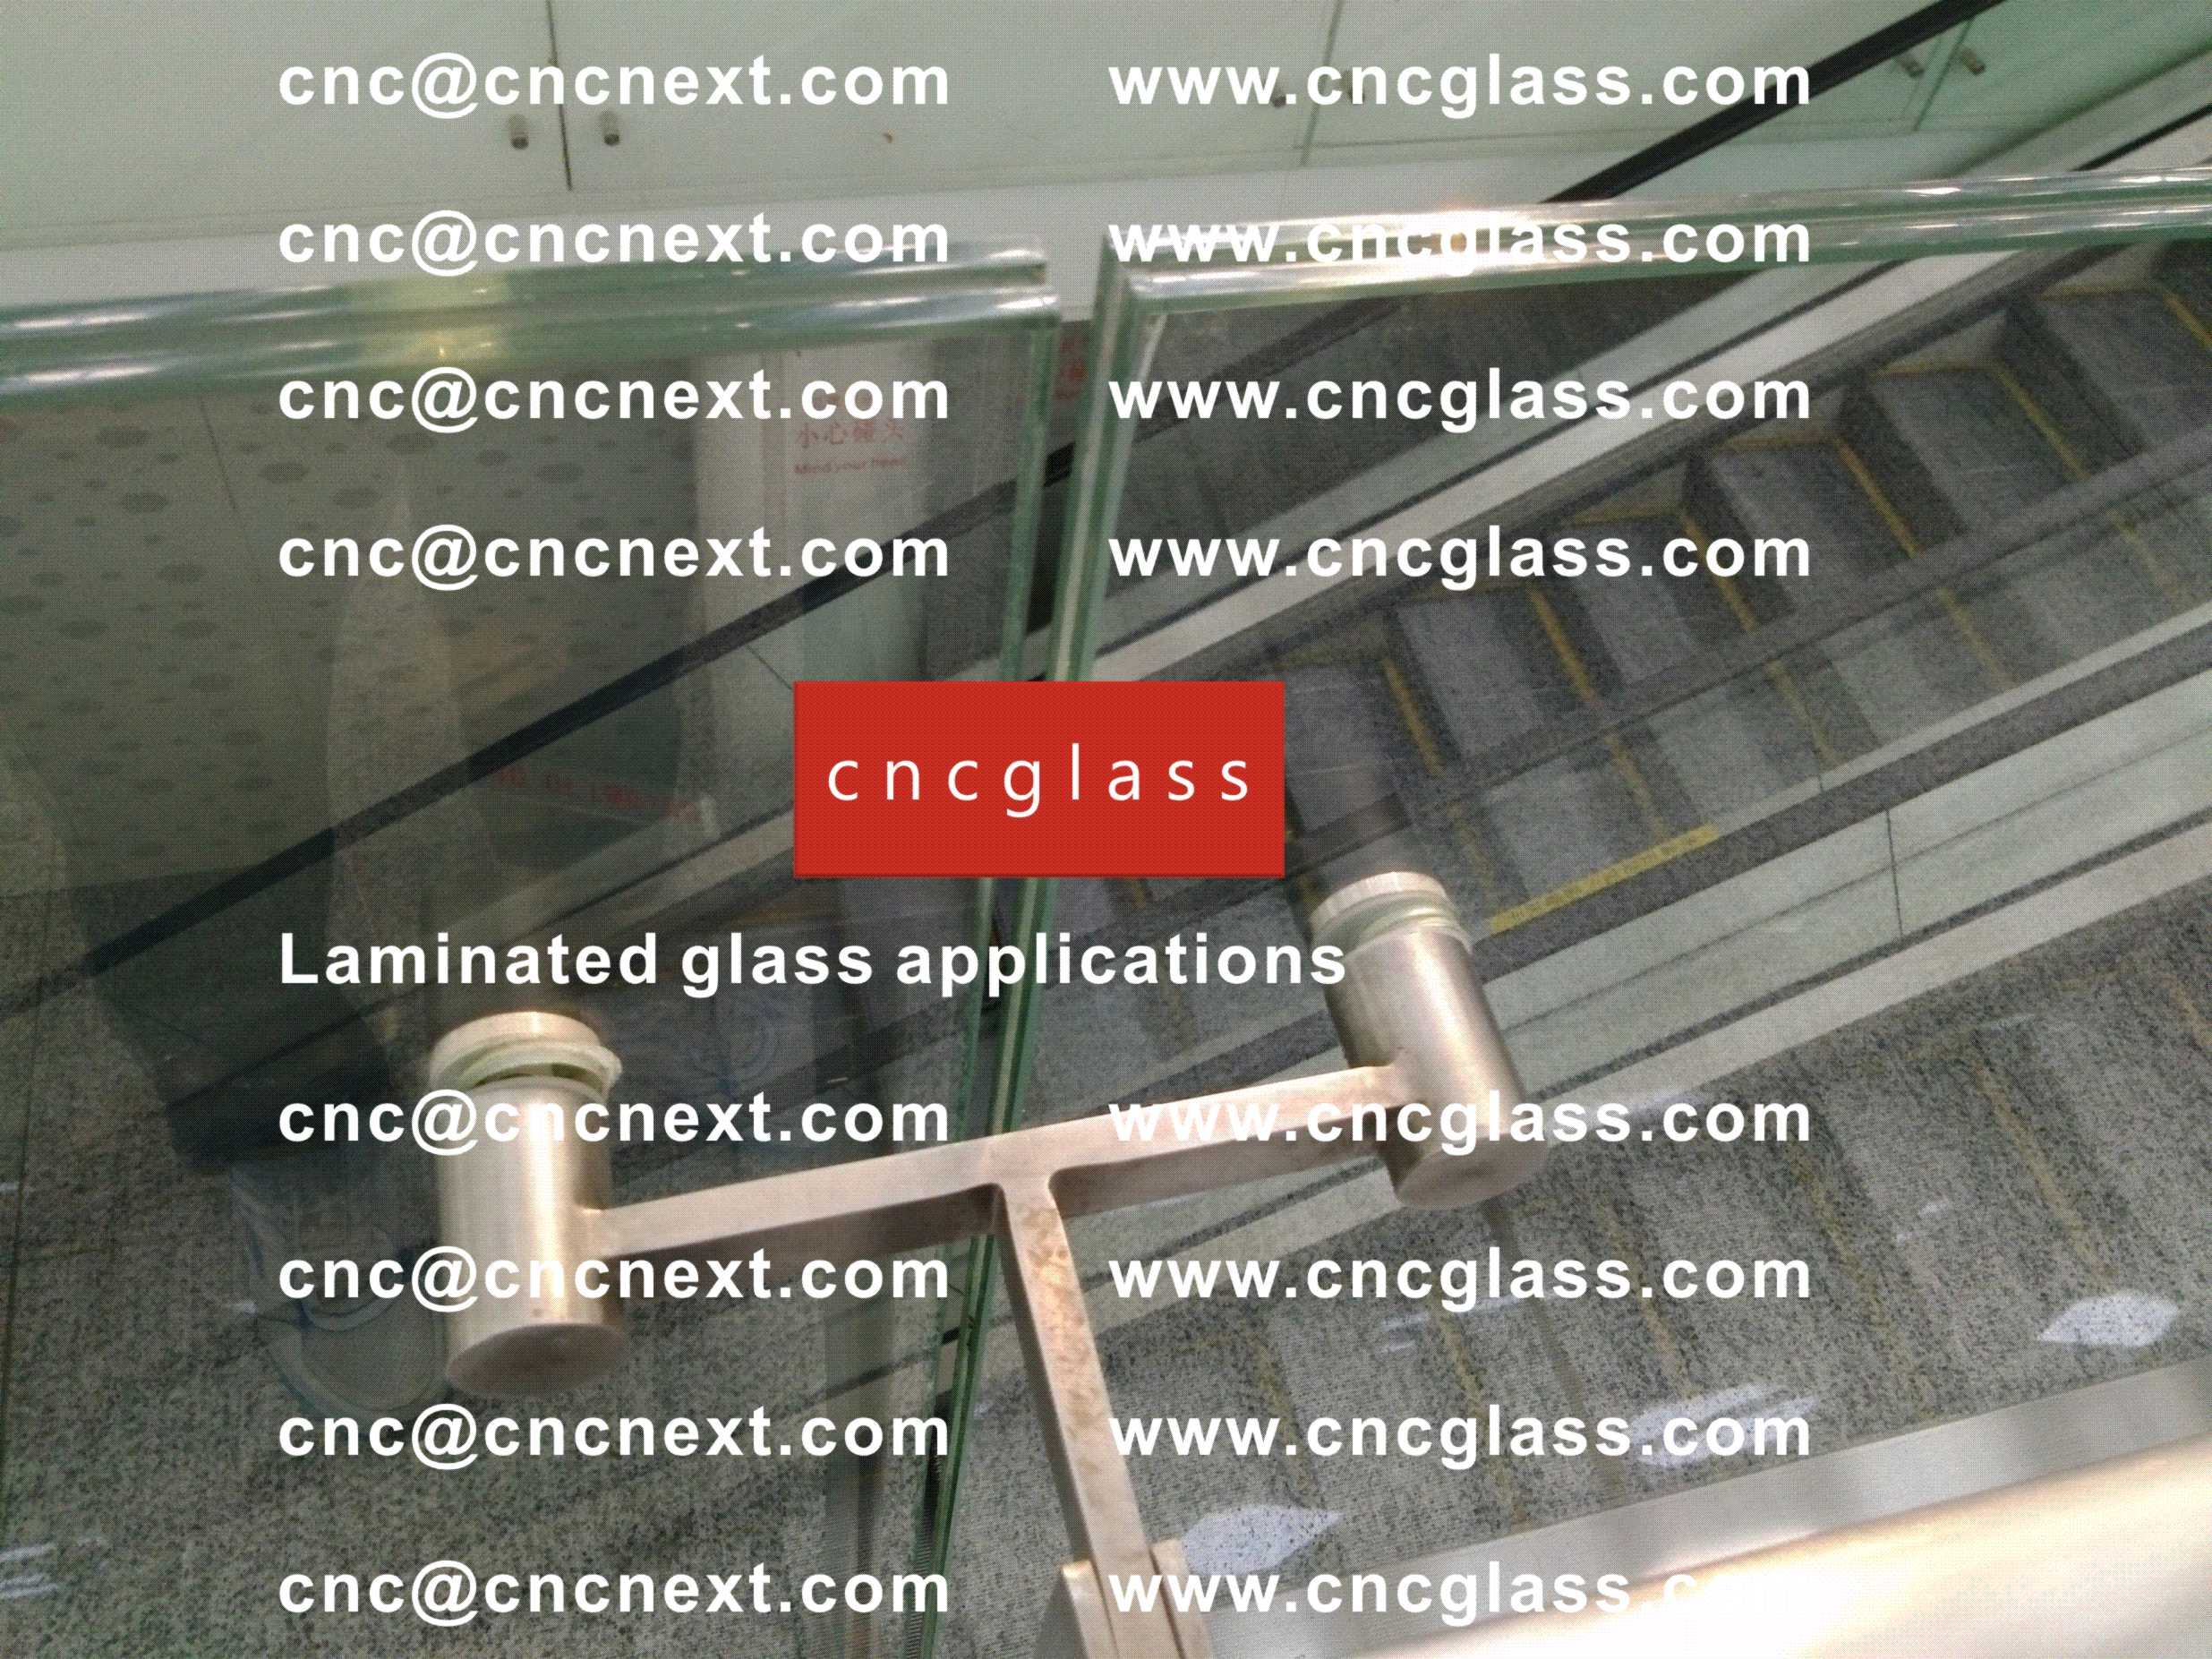 005 EVAFORCE LAMINATED GLASS